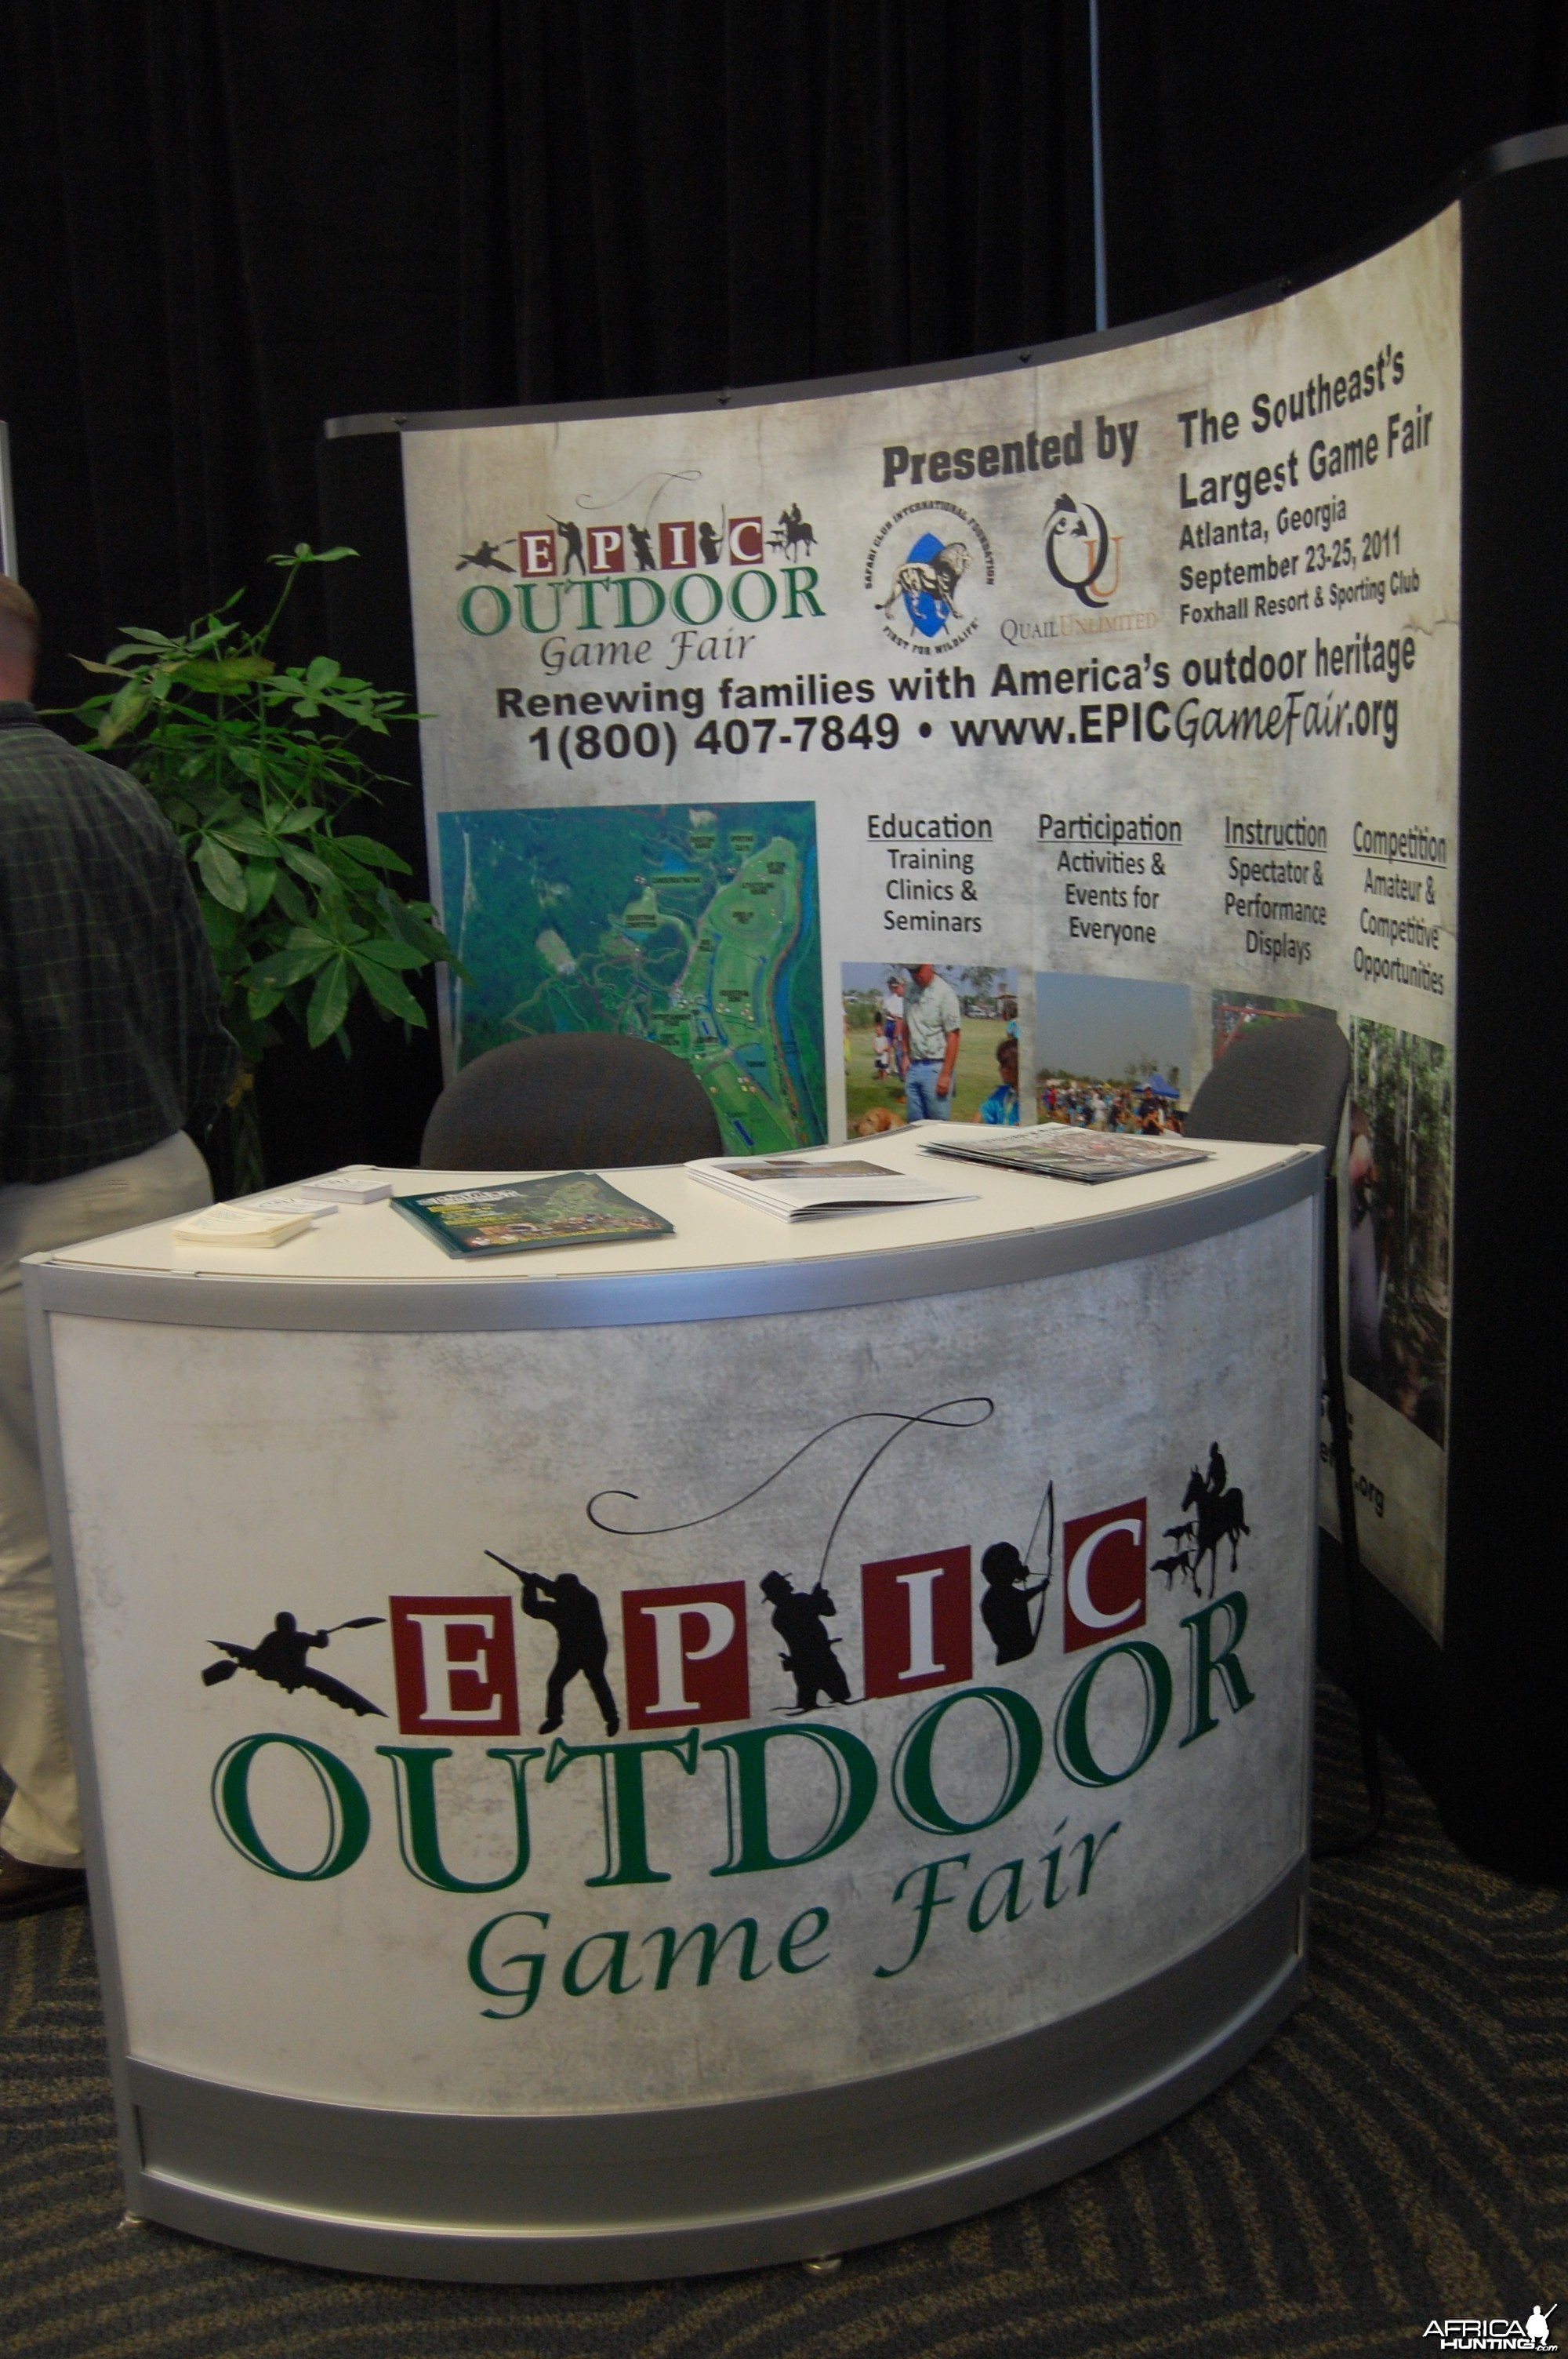 EPIC Outdoor Game Fair